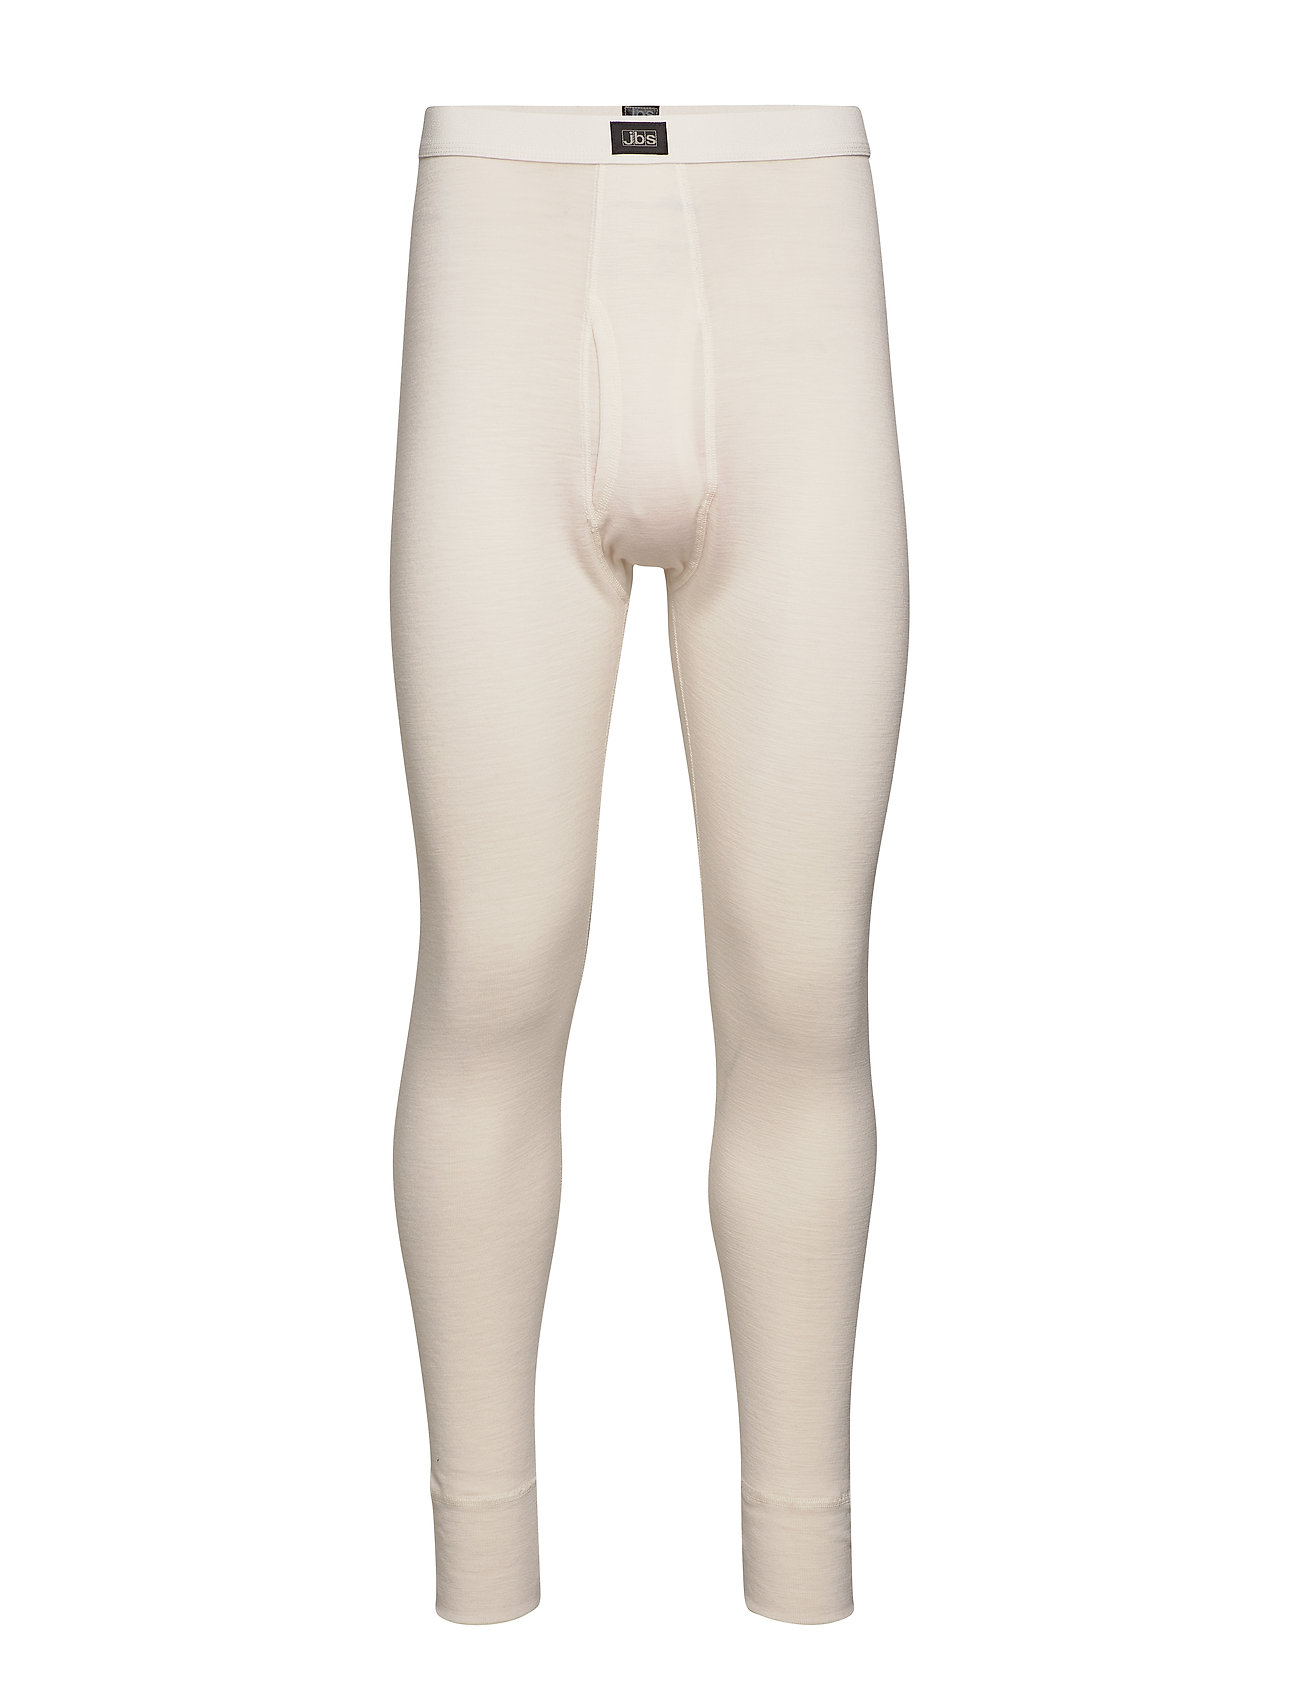 JBS JBS, long johns - WHITE